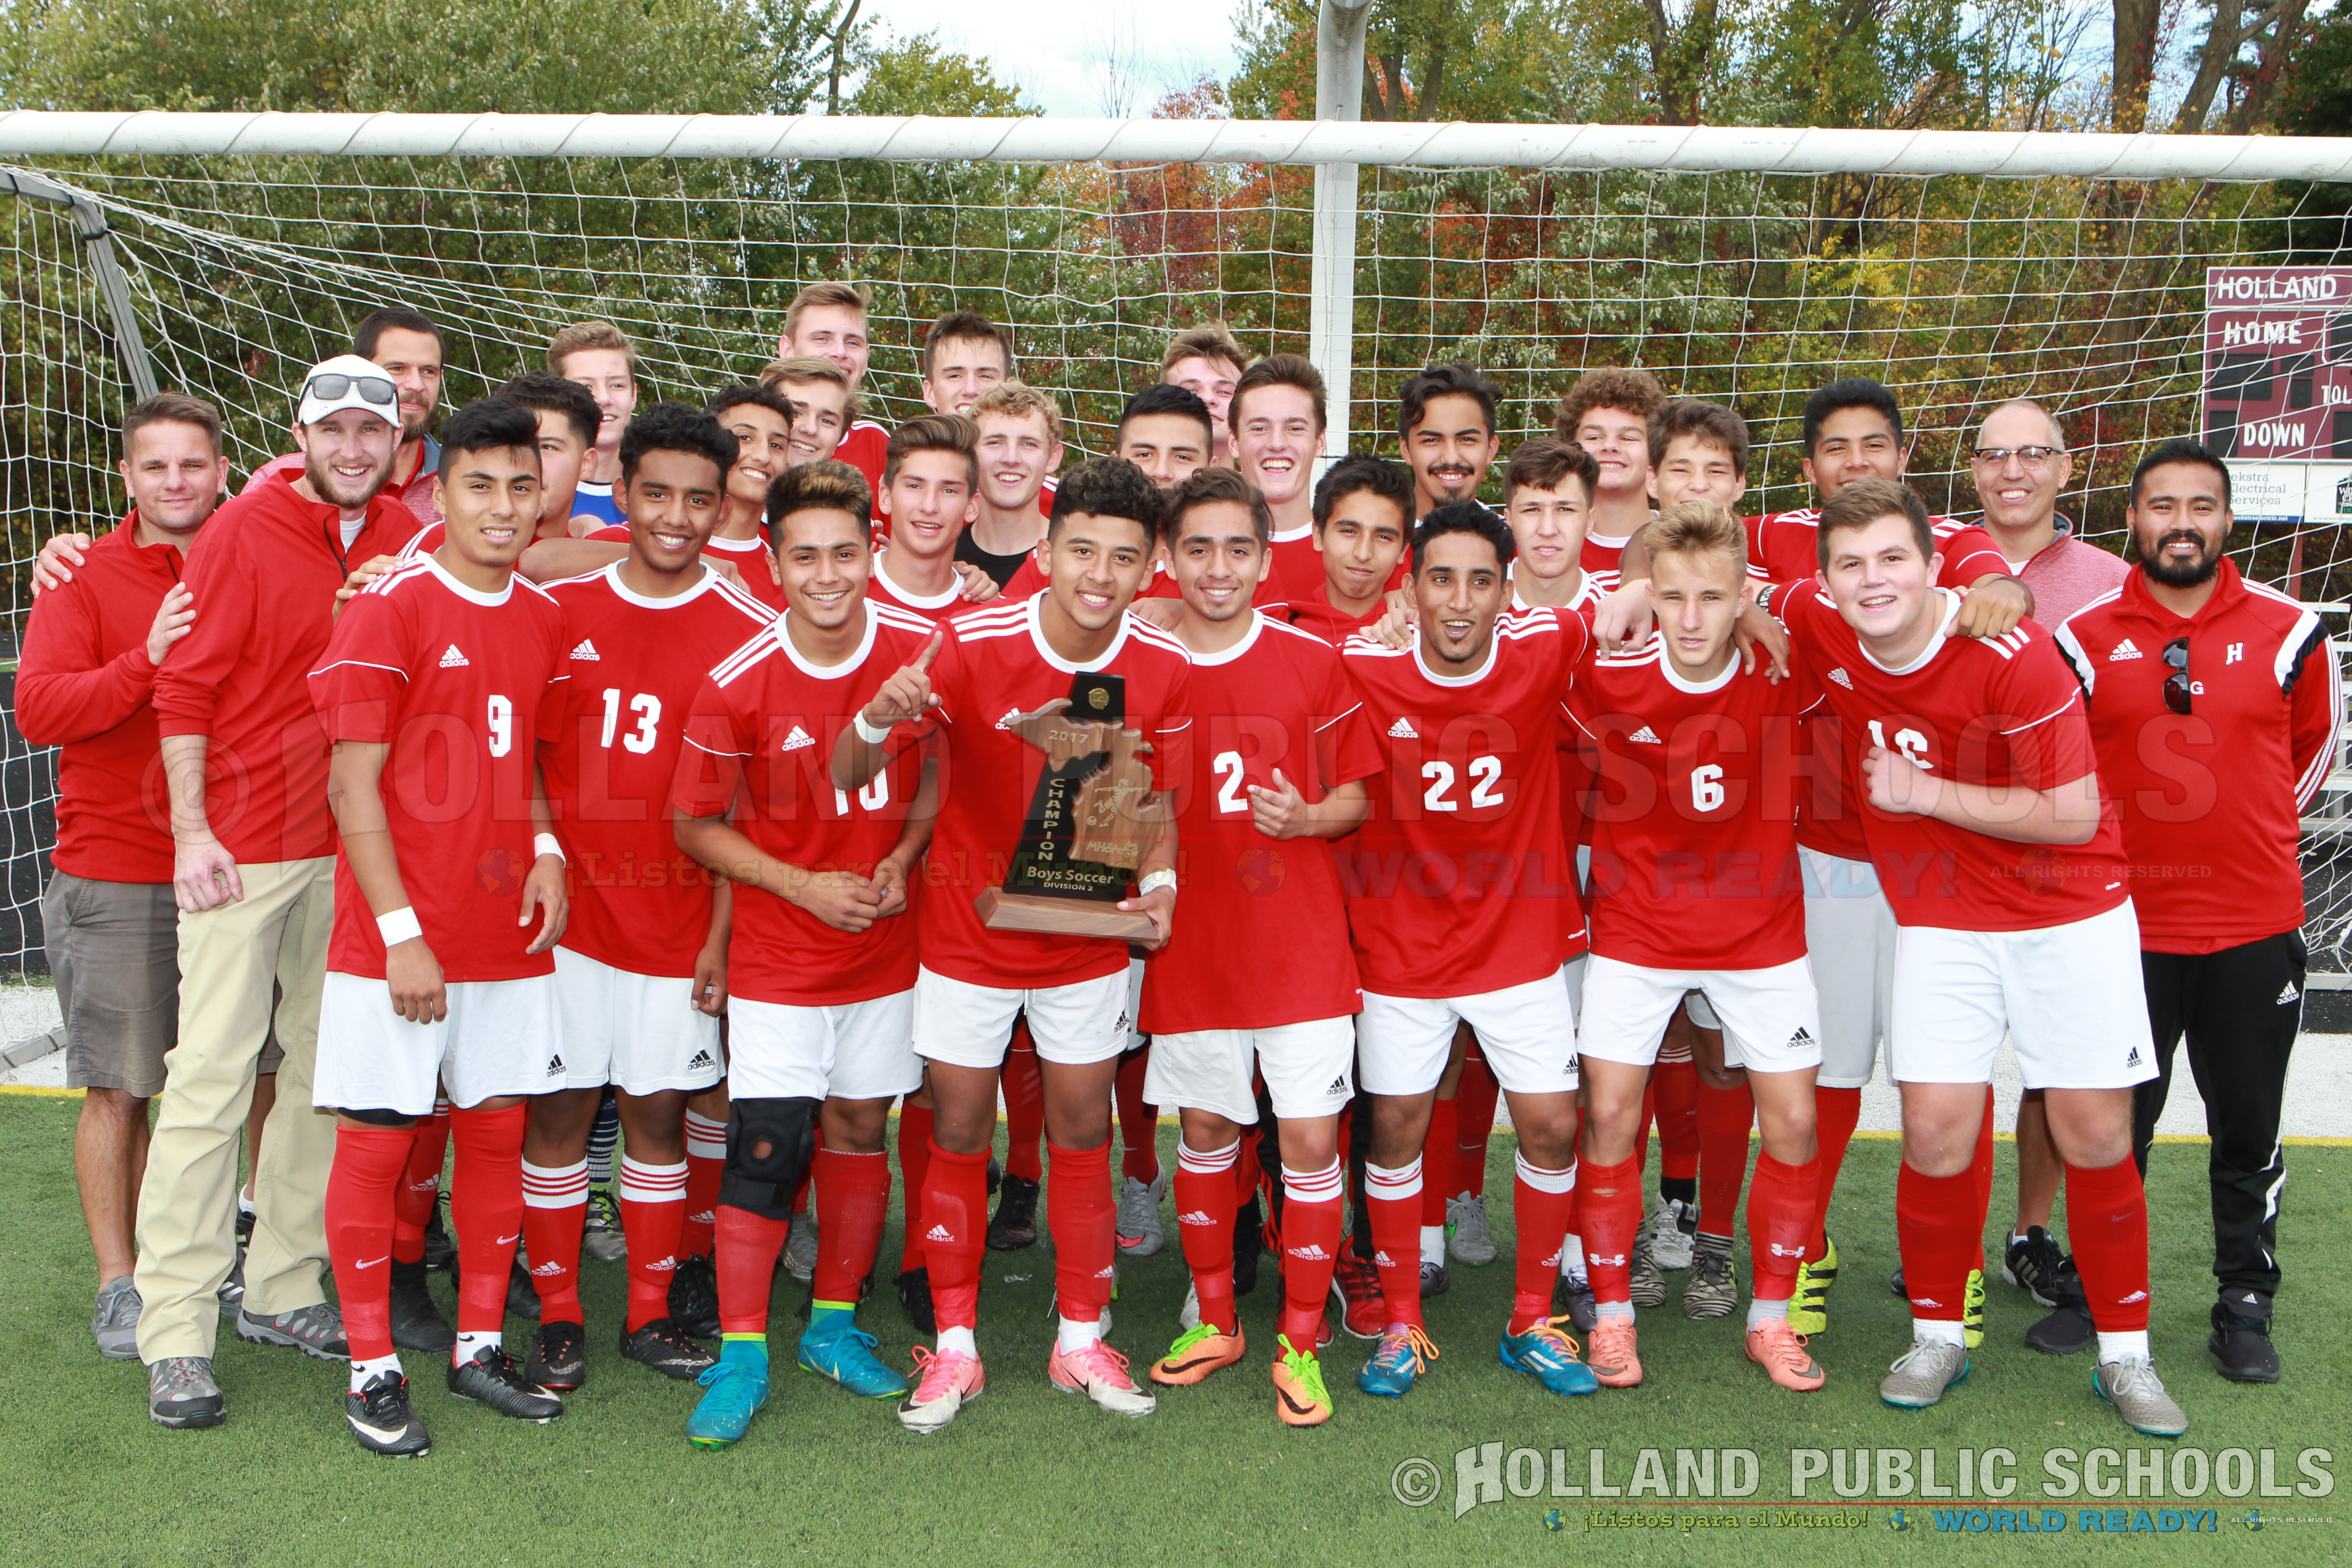 Hps home congratulations to holland high schools boys varsity soccer team on winning the 2017 michigan high school athletic associations mhsaa division 2 boys sciox Choice Image